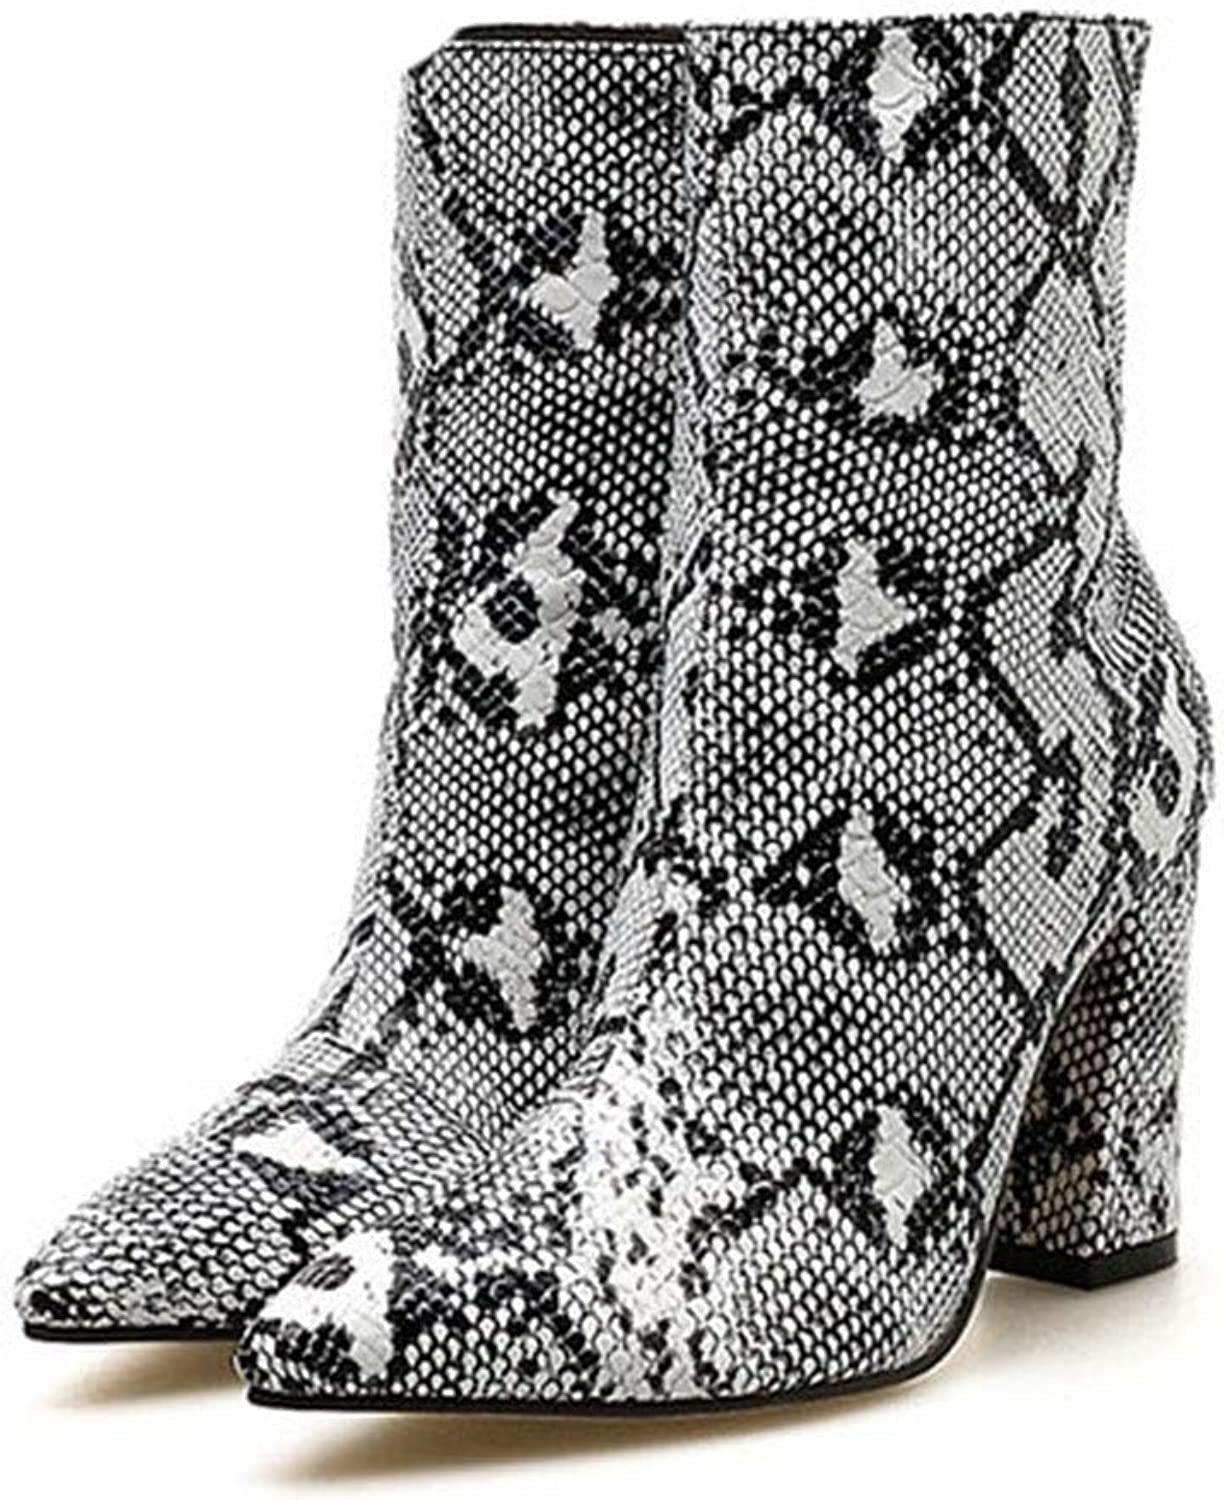 Friedman Women Zipper Boots Snake Print Ankle Boots Square Heel Fashion Pointed Toe Ladies Sexy shoes 2018 New Chelsea Boots